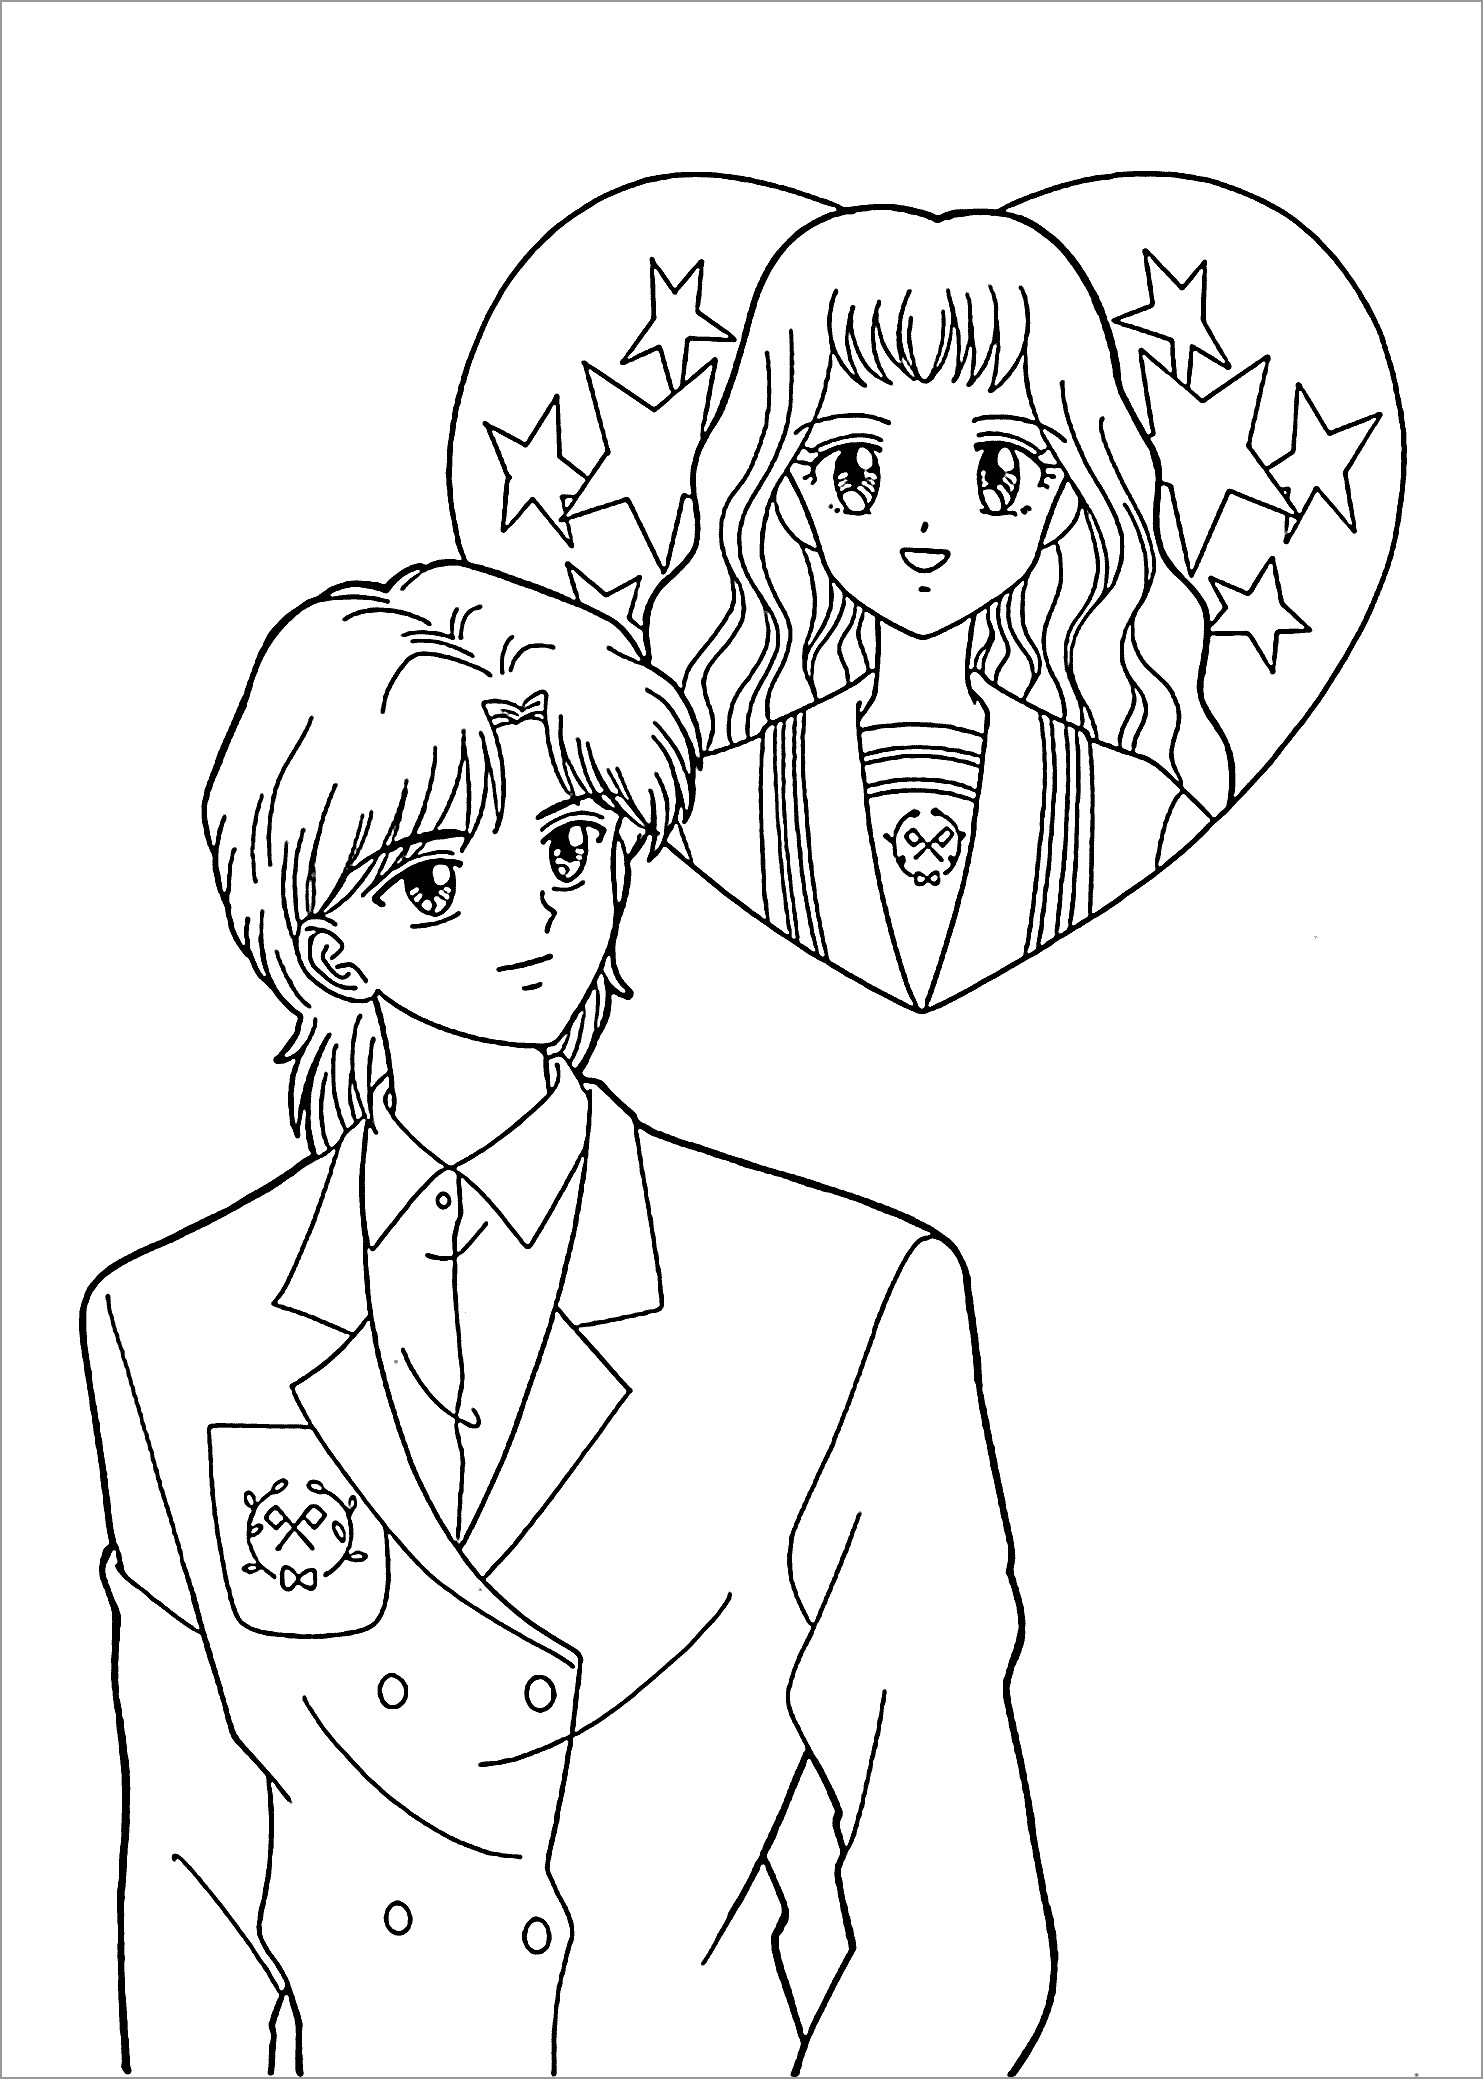 coloring boy girl free printable people themed coloring pages from craft elf boy girl coloring